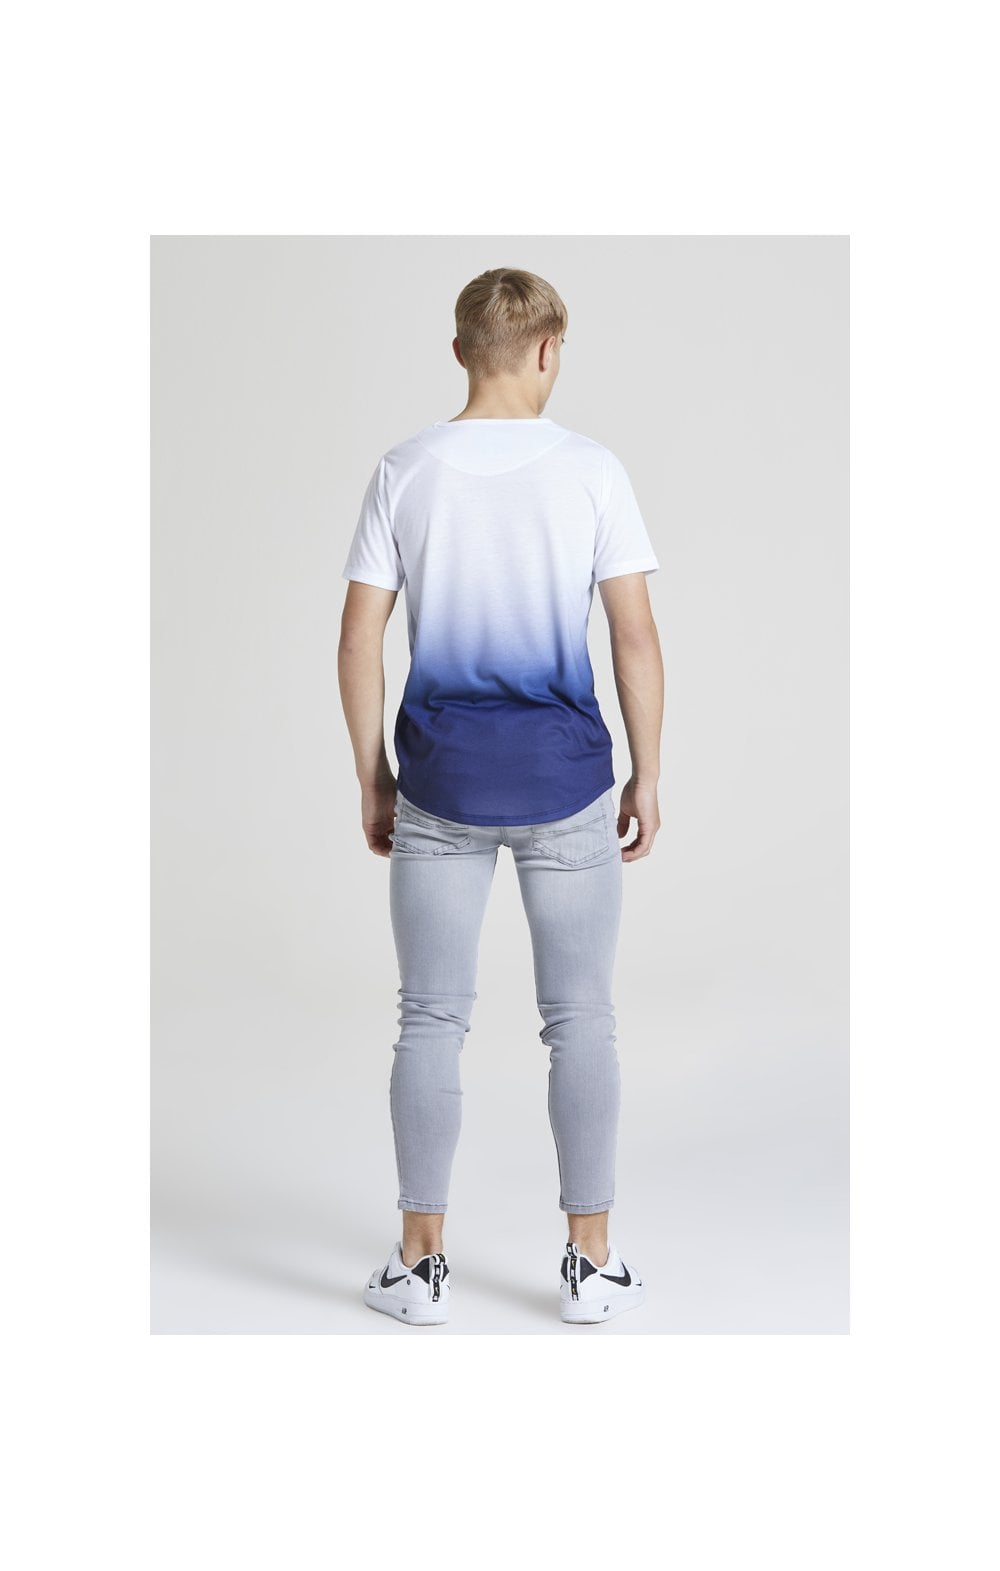 Load image into Gallery viewer, Illusive London Core Fade Tee – White & Navy (4)